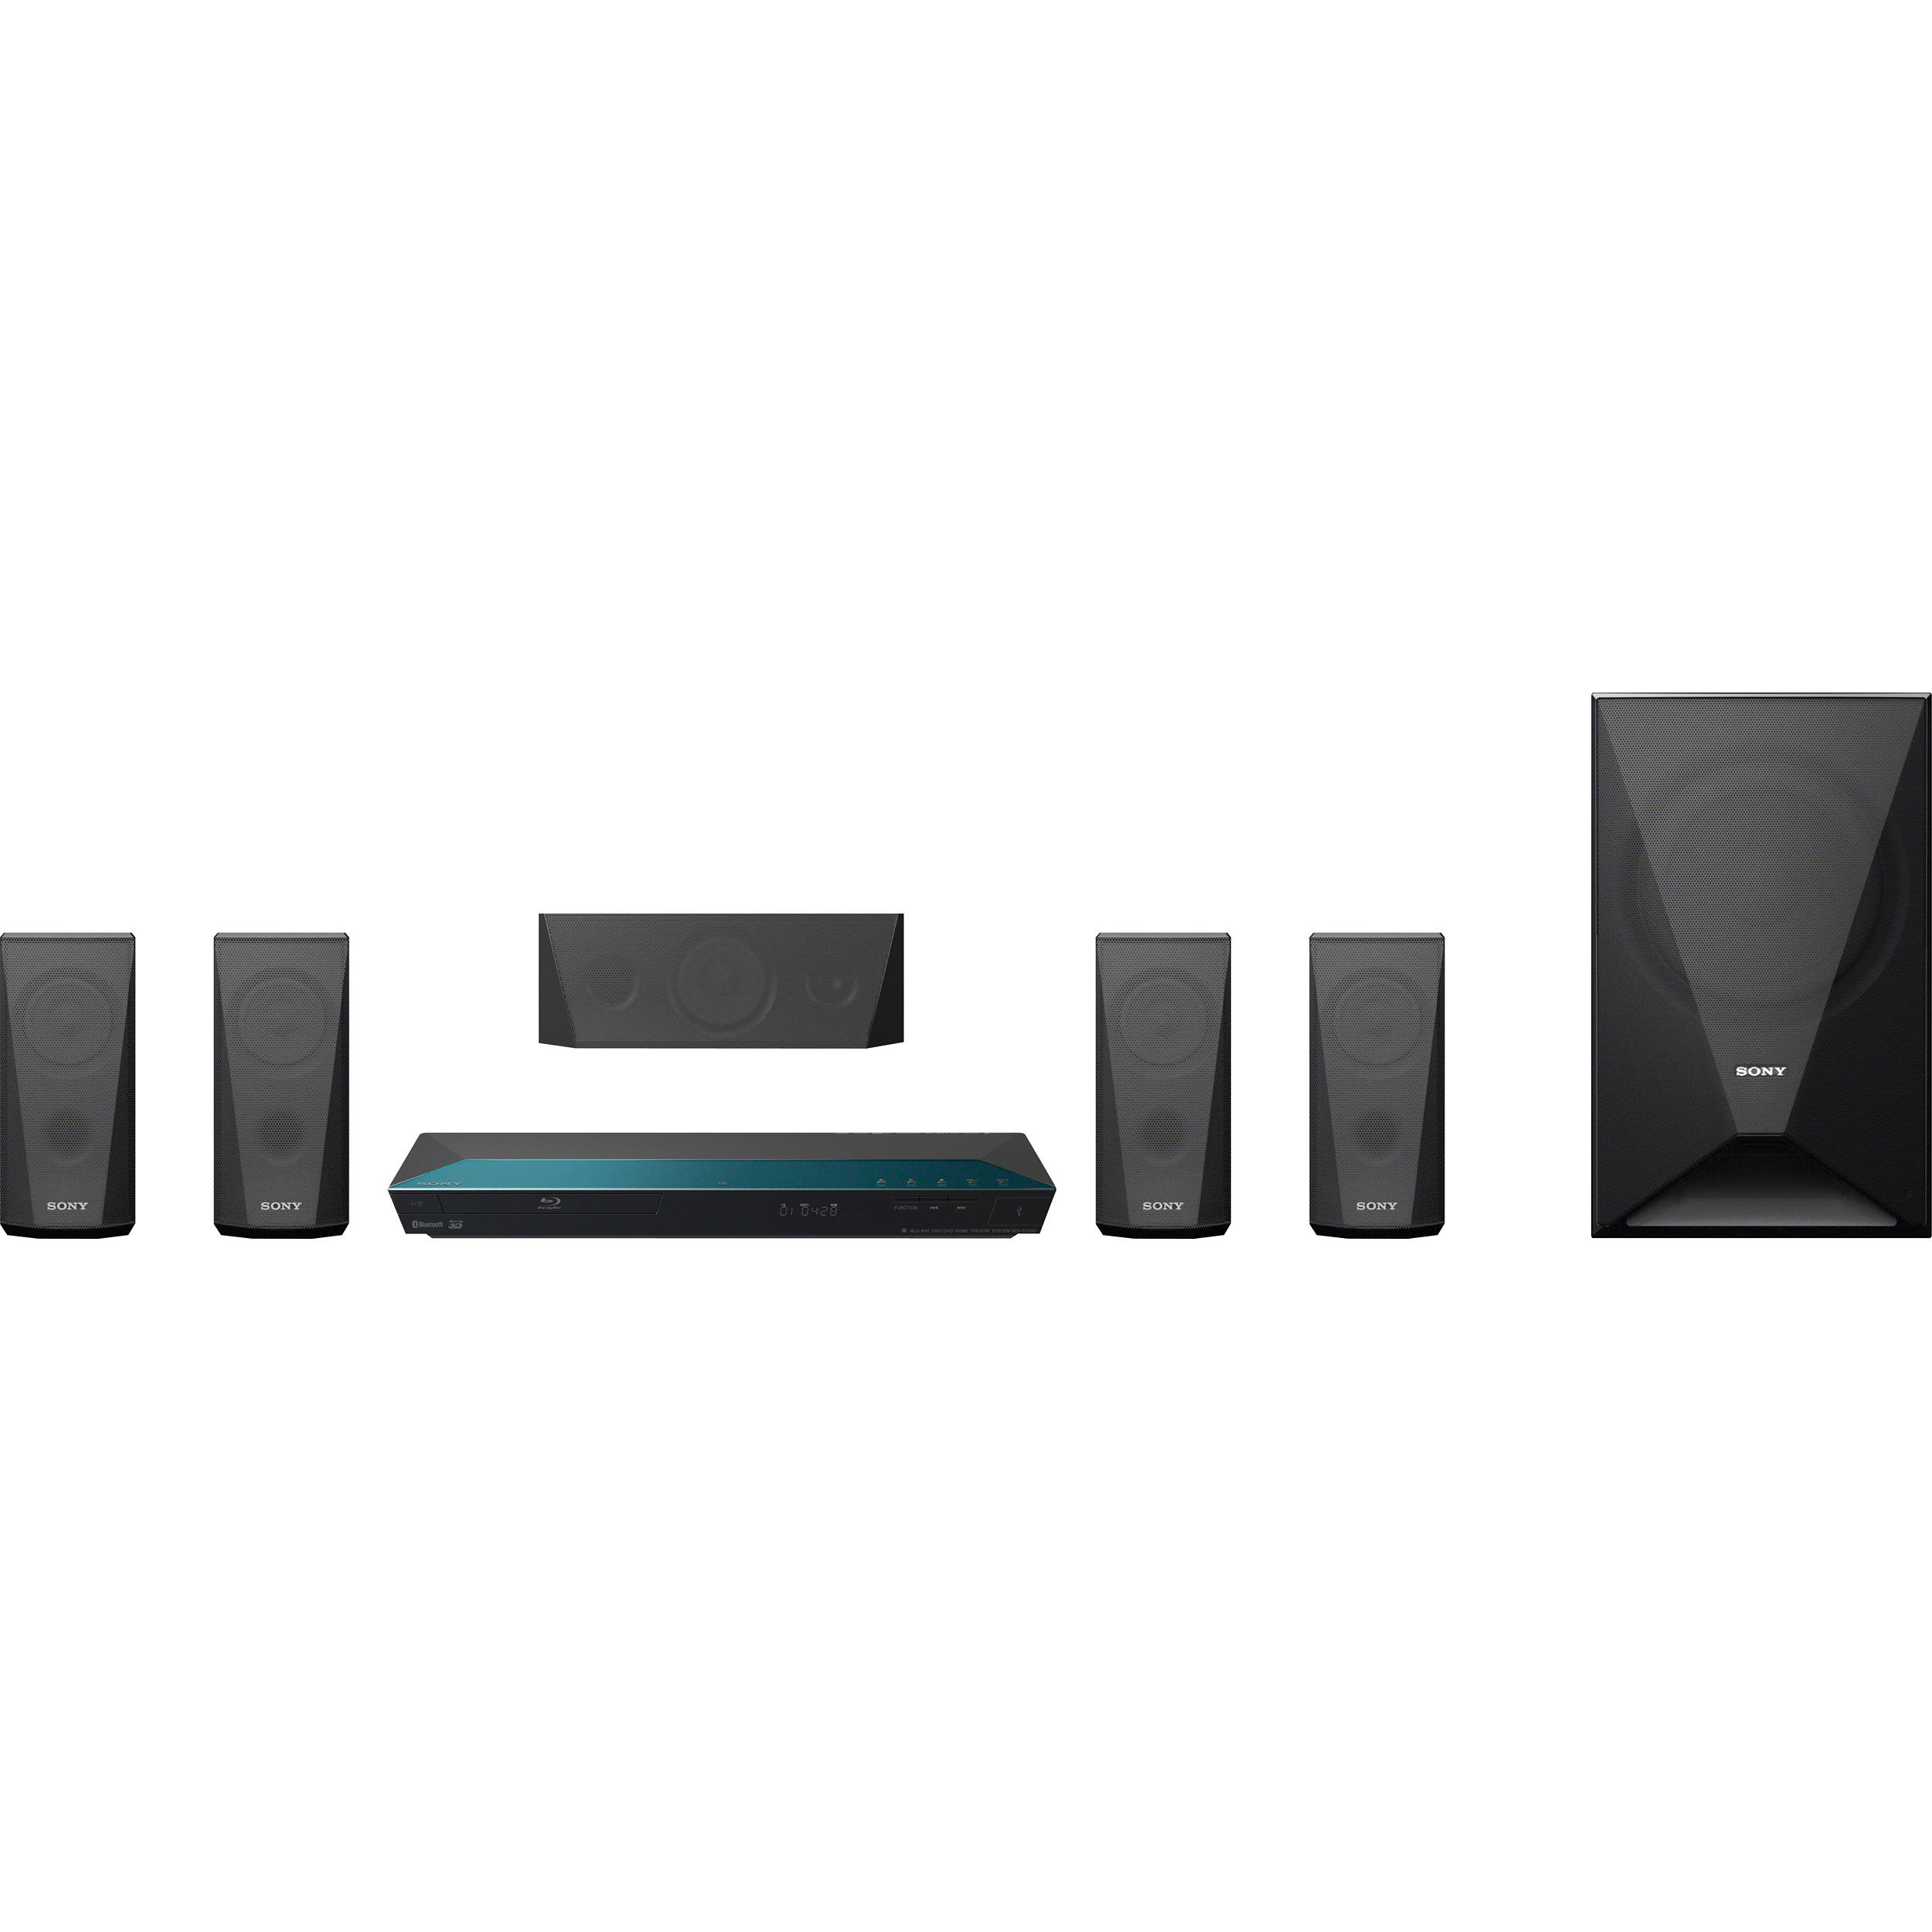 Sony Bdv E3100 3d Blu Ray Home Theater With Wi Fi Bdv